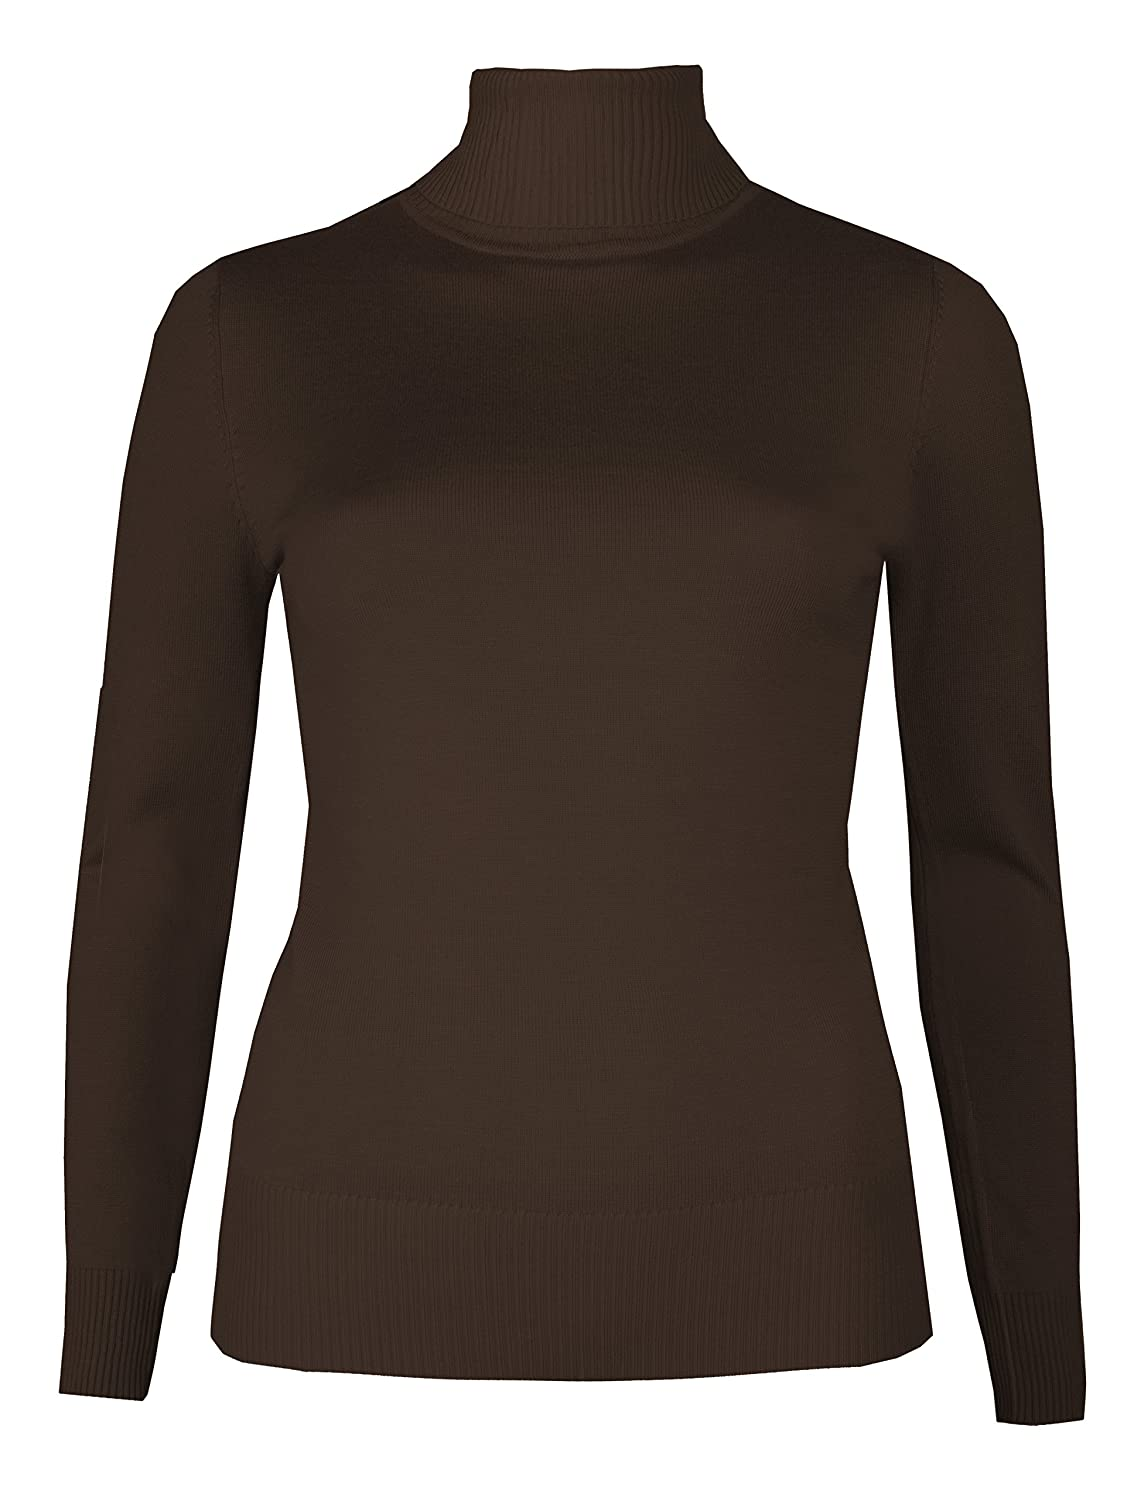 Brody & Co. Womens Roll Necks Jumpers Plain Fine Knit Polo Necks Sweaters Winter Tops